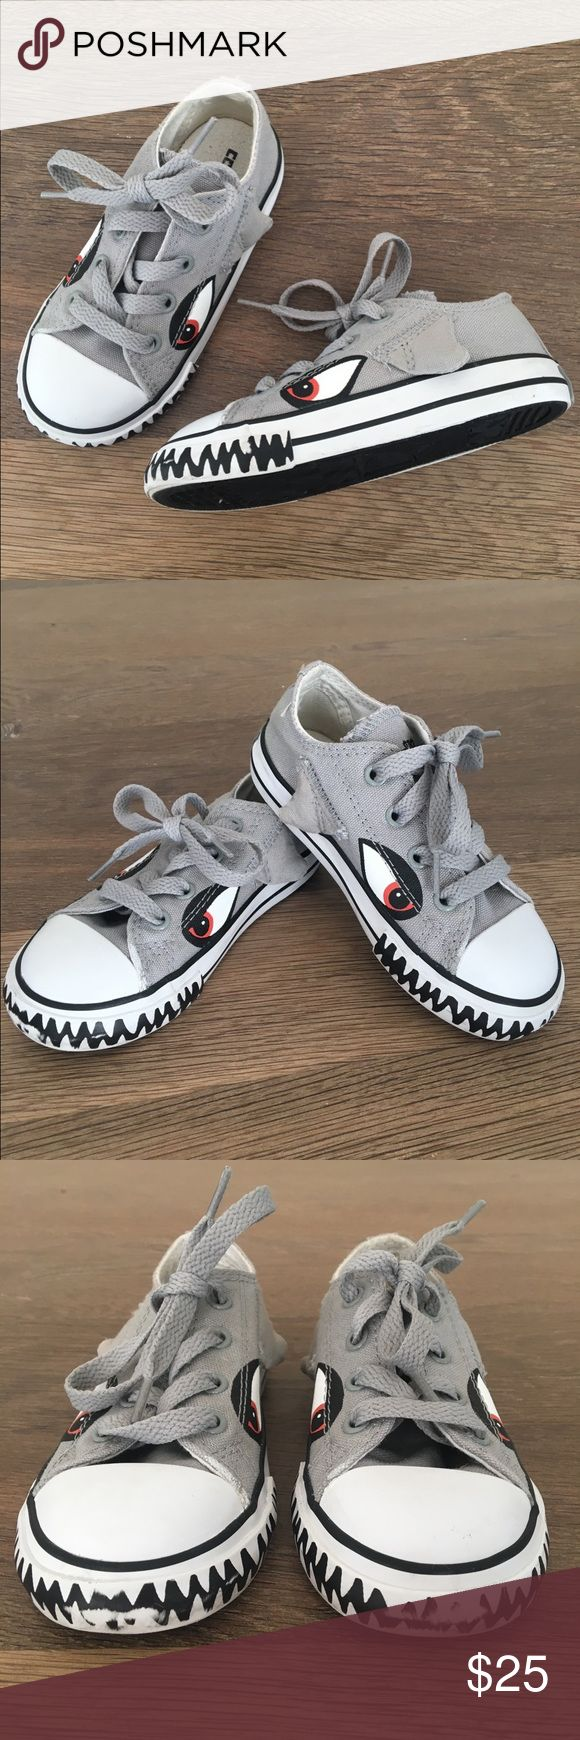 Converse All Star Shark Sneakers Toddler The cutest toddler boy shoes! Lace-up sneakers. Gently worn for a photoshoot. Some scuffing at the front as pictured, otherwise in great condition. Converse Shoes Sneakers